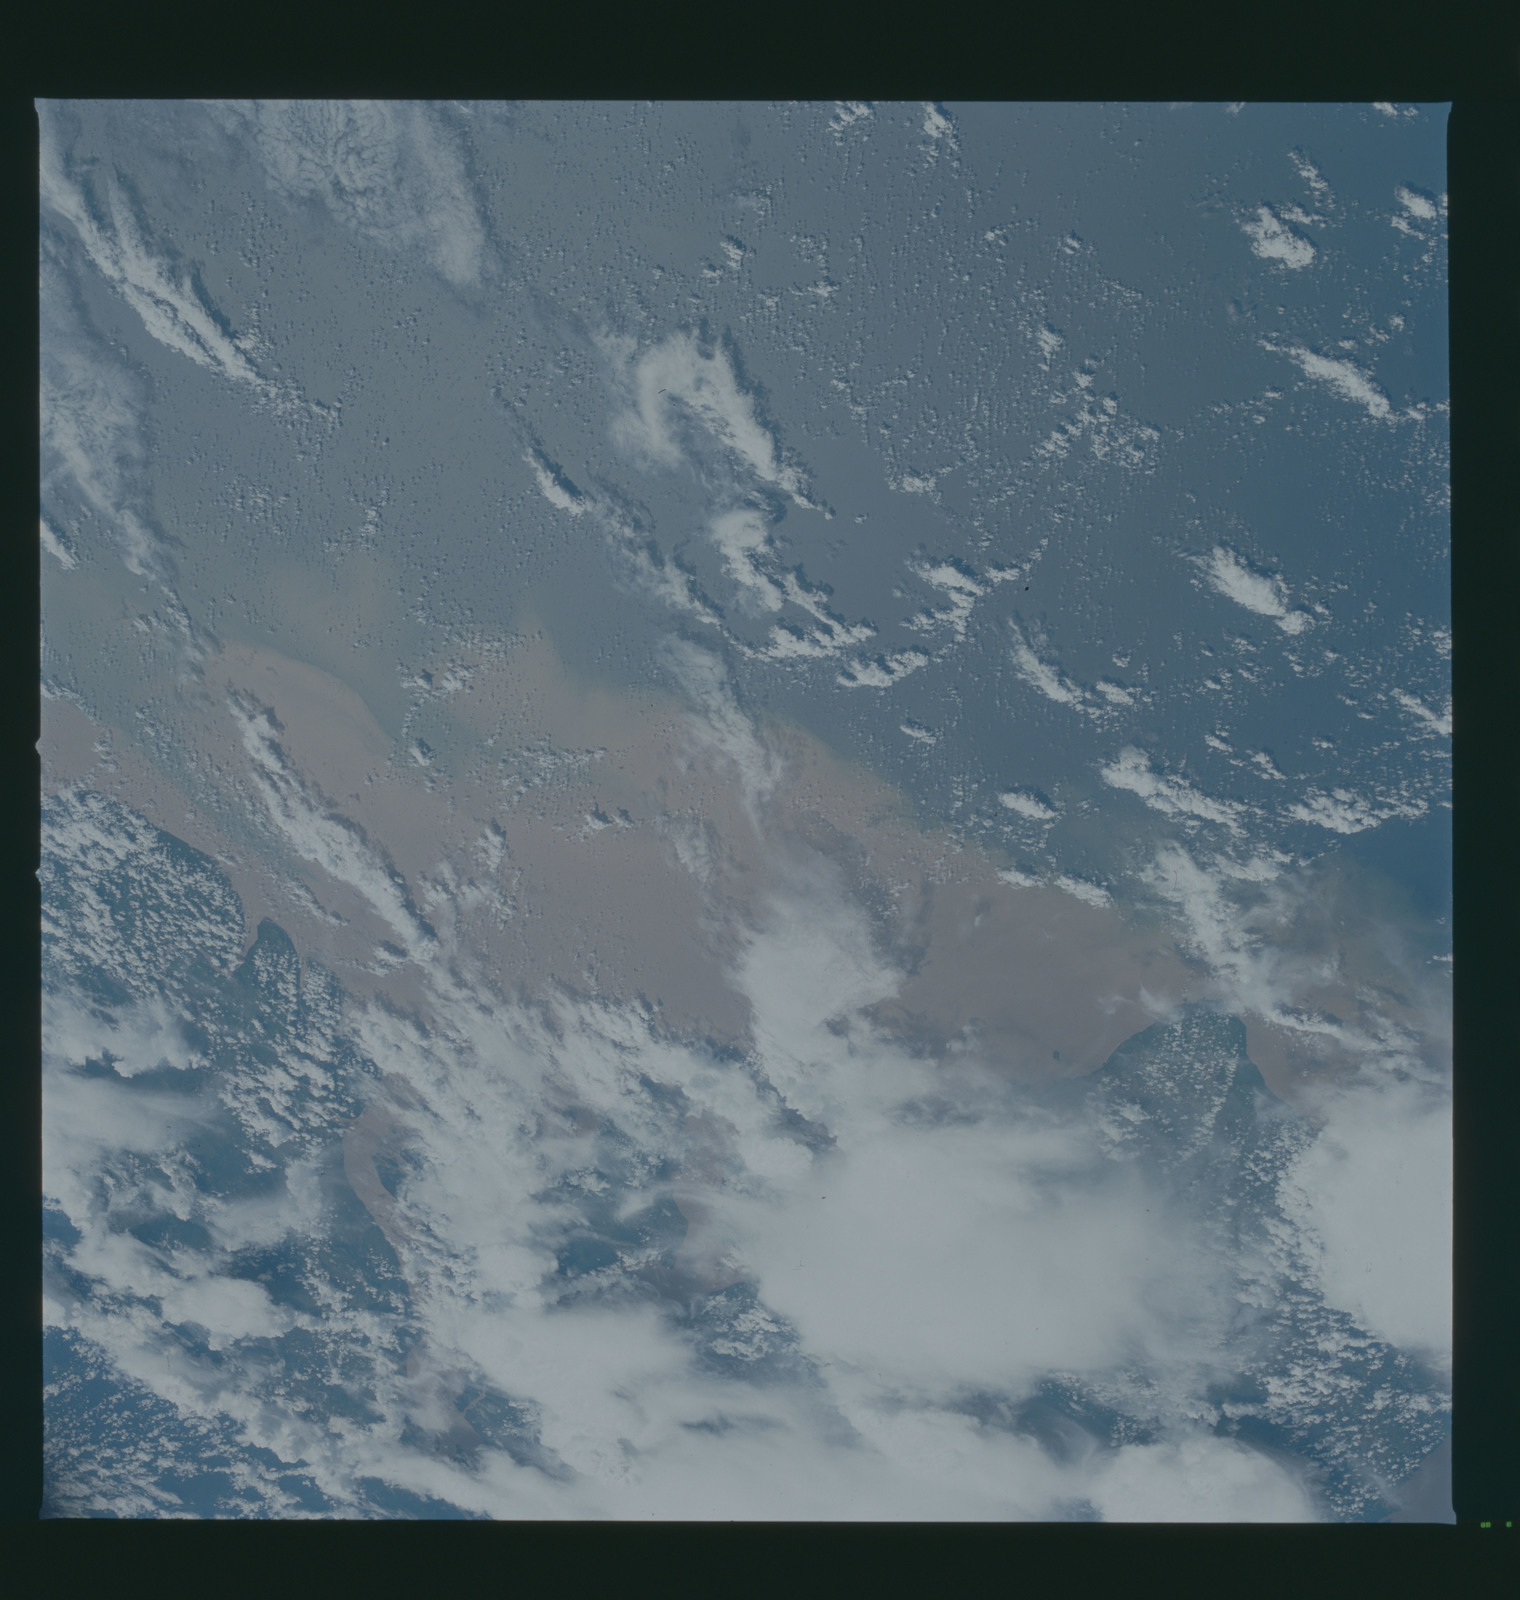 S37-94-001 - STS-037 - Earth observations taken from OV-104 during STS-37 mission